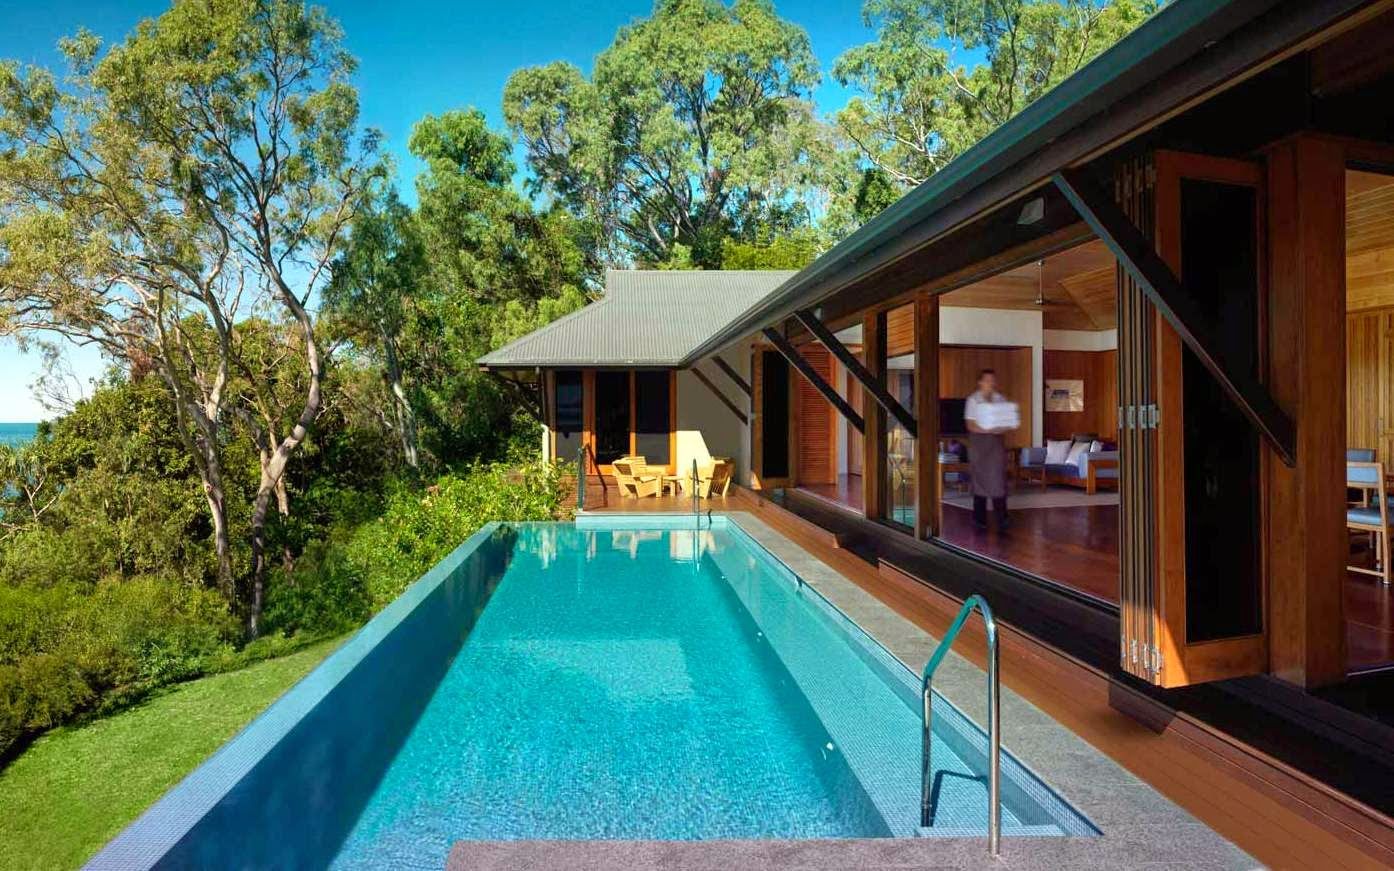 Pictures of Modern Pool House Designs